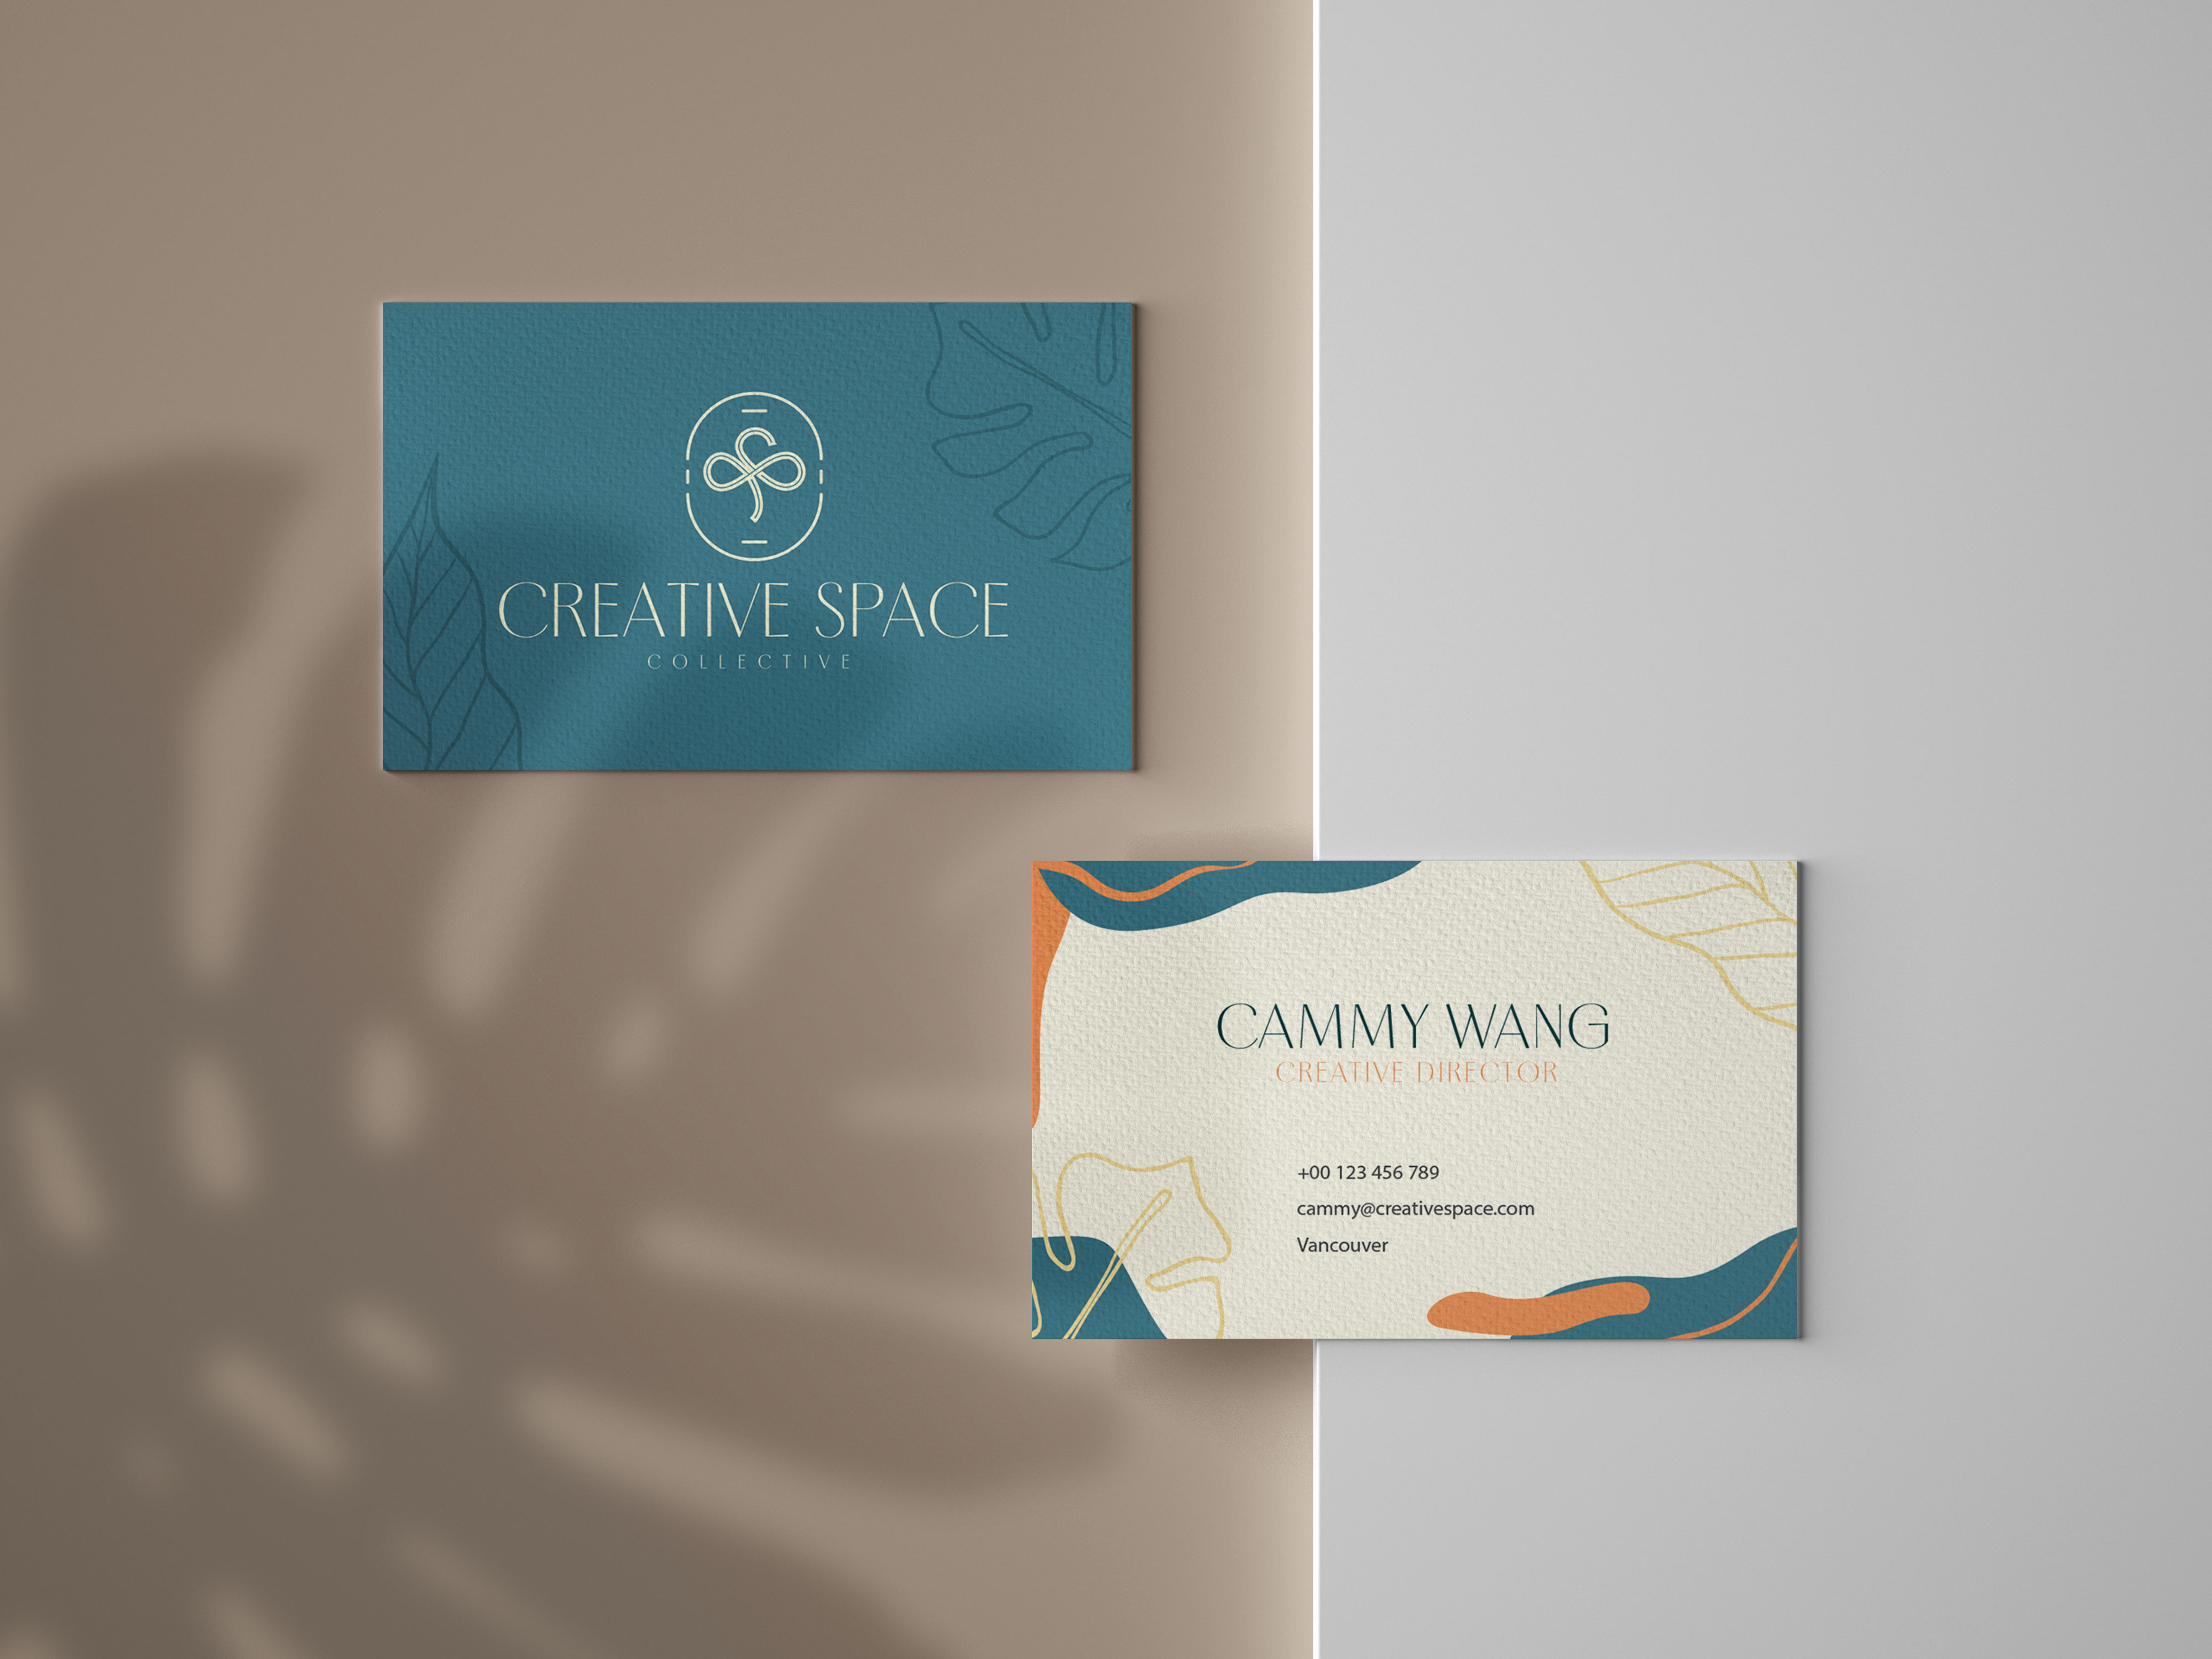 Top view of Creative Space business card featuring glover logo